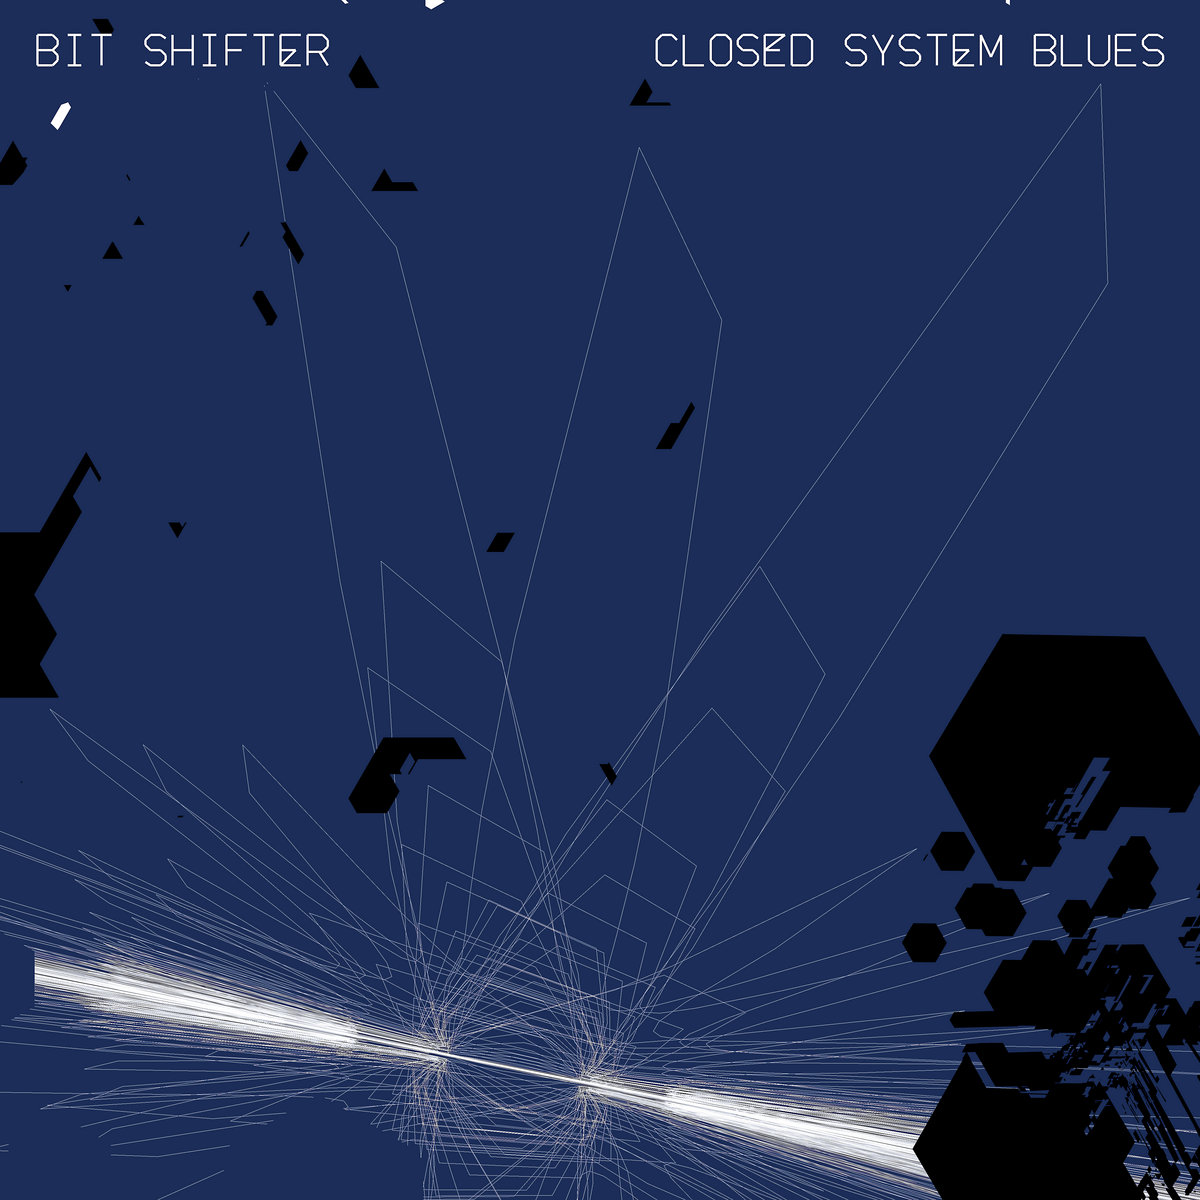 Bit Shifter – Closed System Blues